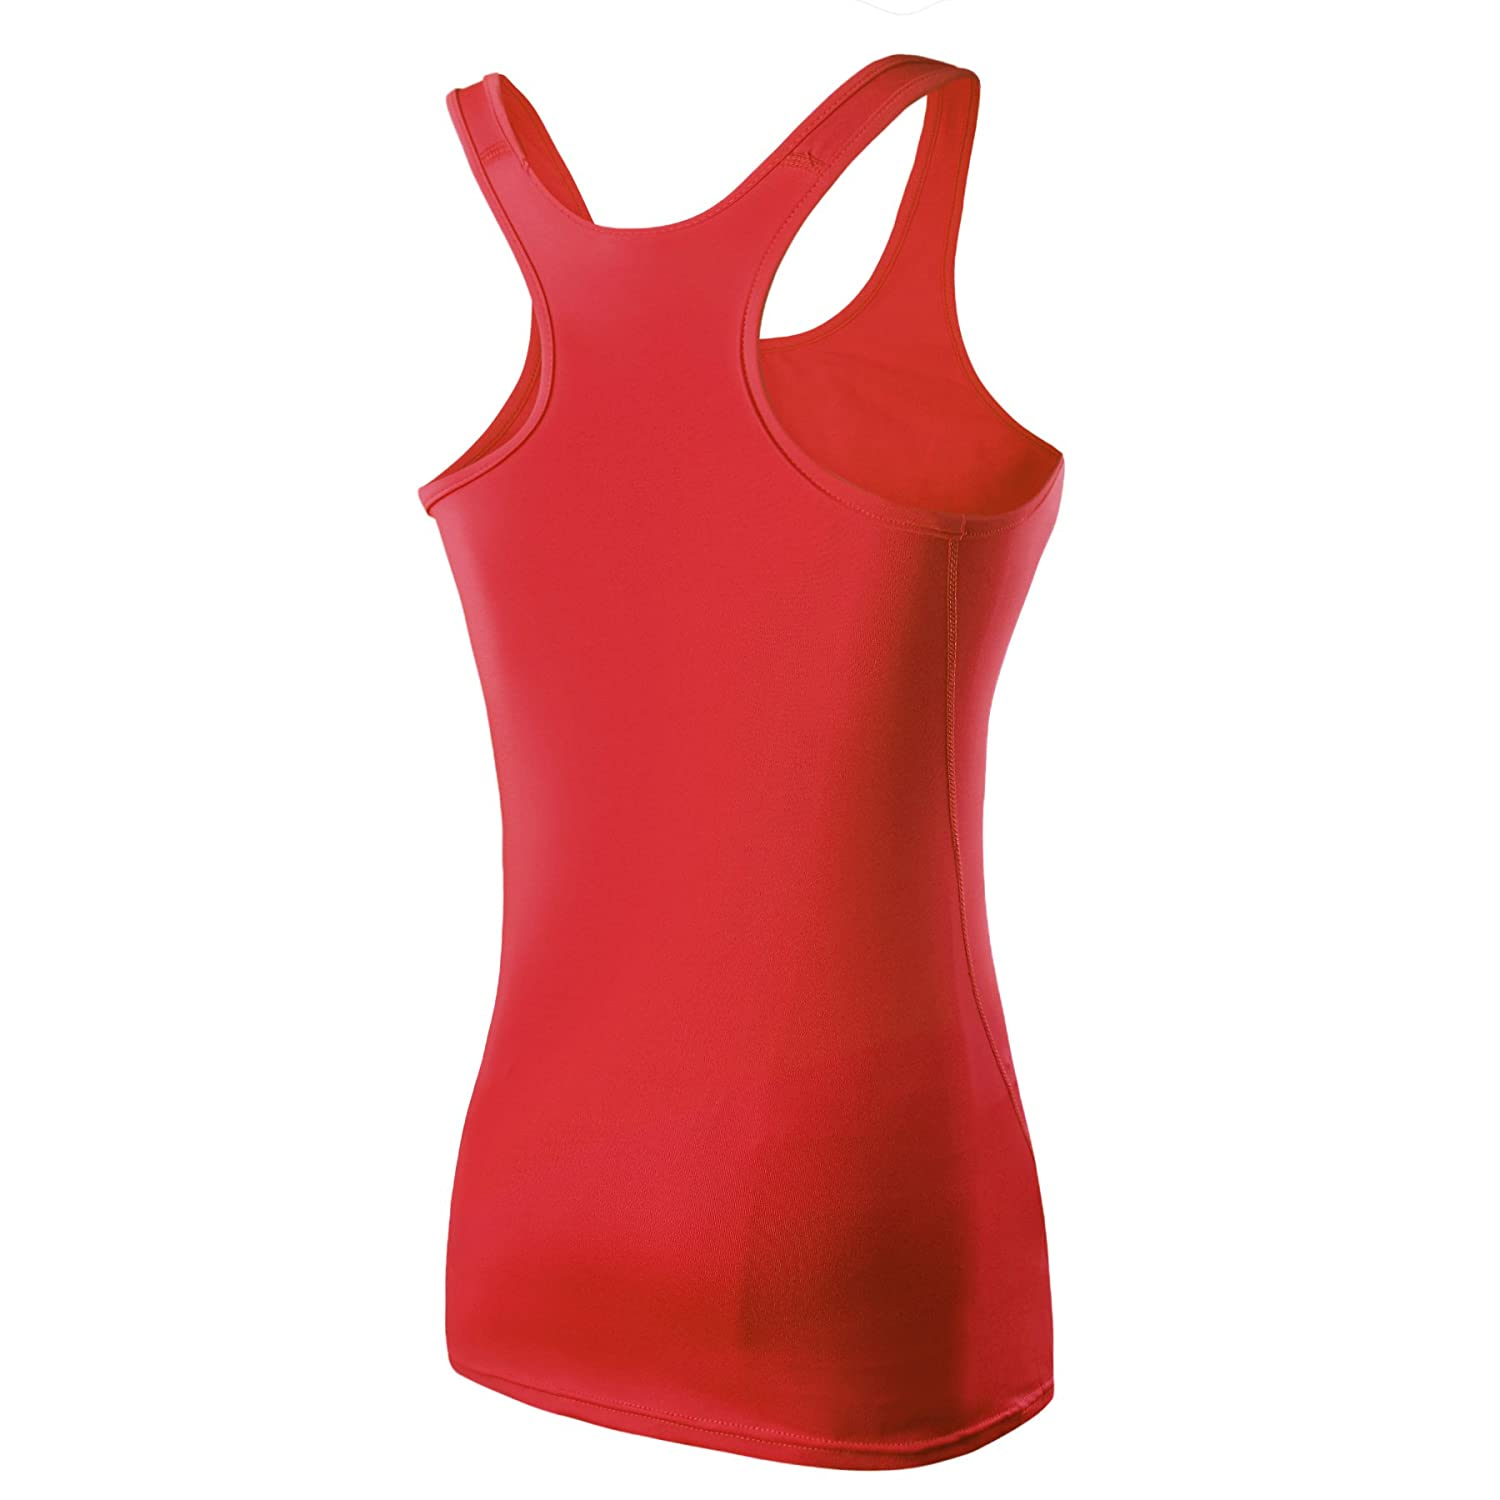 MAGNIVT Womens 3 Pack Dry Fit Compression Tank Top